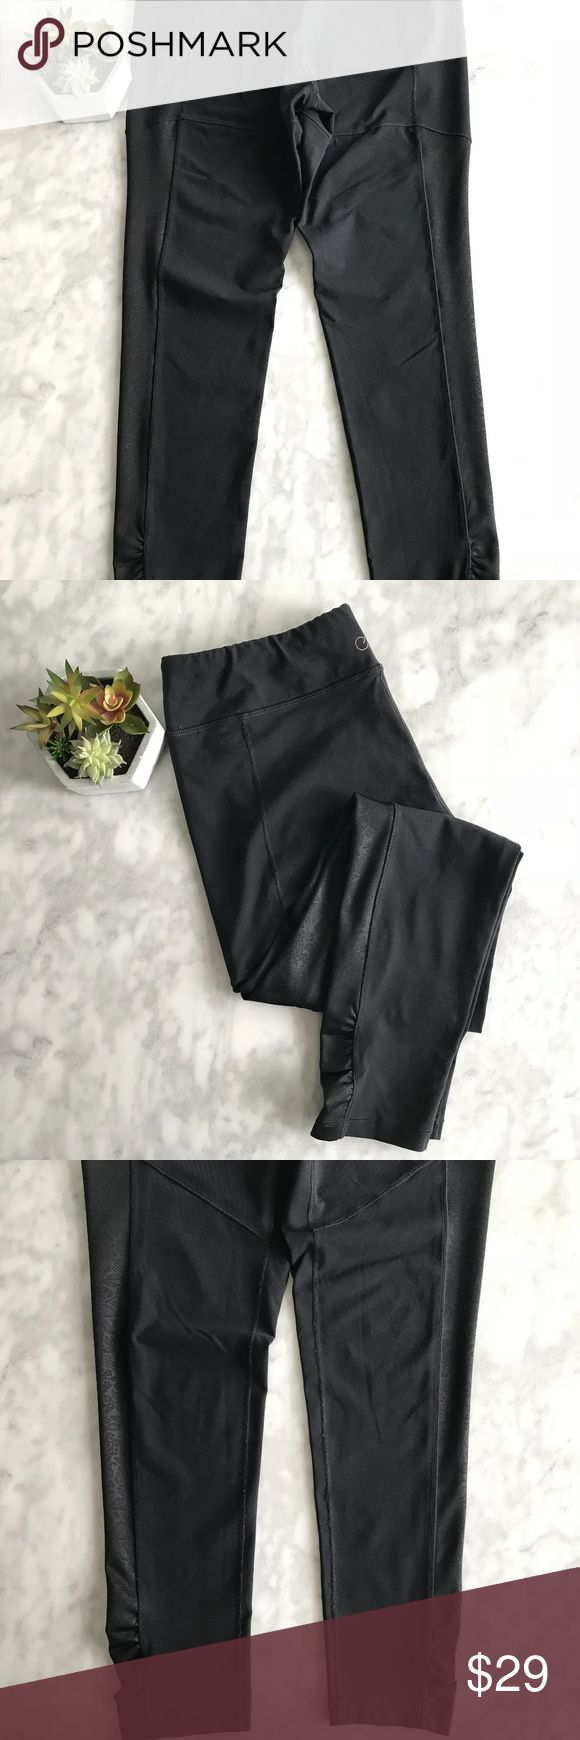 "Calia Carrie Underwood Black Leggings Large Run Gorgeous and simple for any workout, floral side leg detail. Waist measures 16"" and 26"" inseam on this lycra legging, minor wear but overall great condition!  No trades, no PP or otherwise-Happy Shopping! CALIA by Carrie Underwood Pants Leggings"